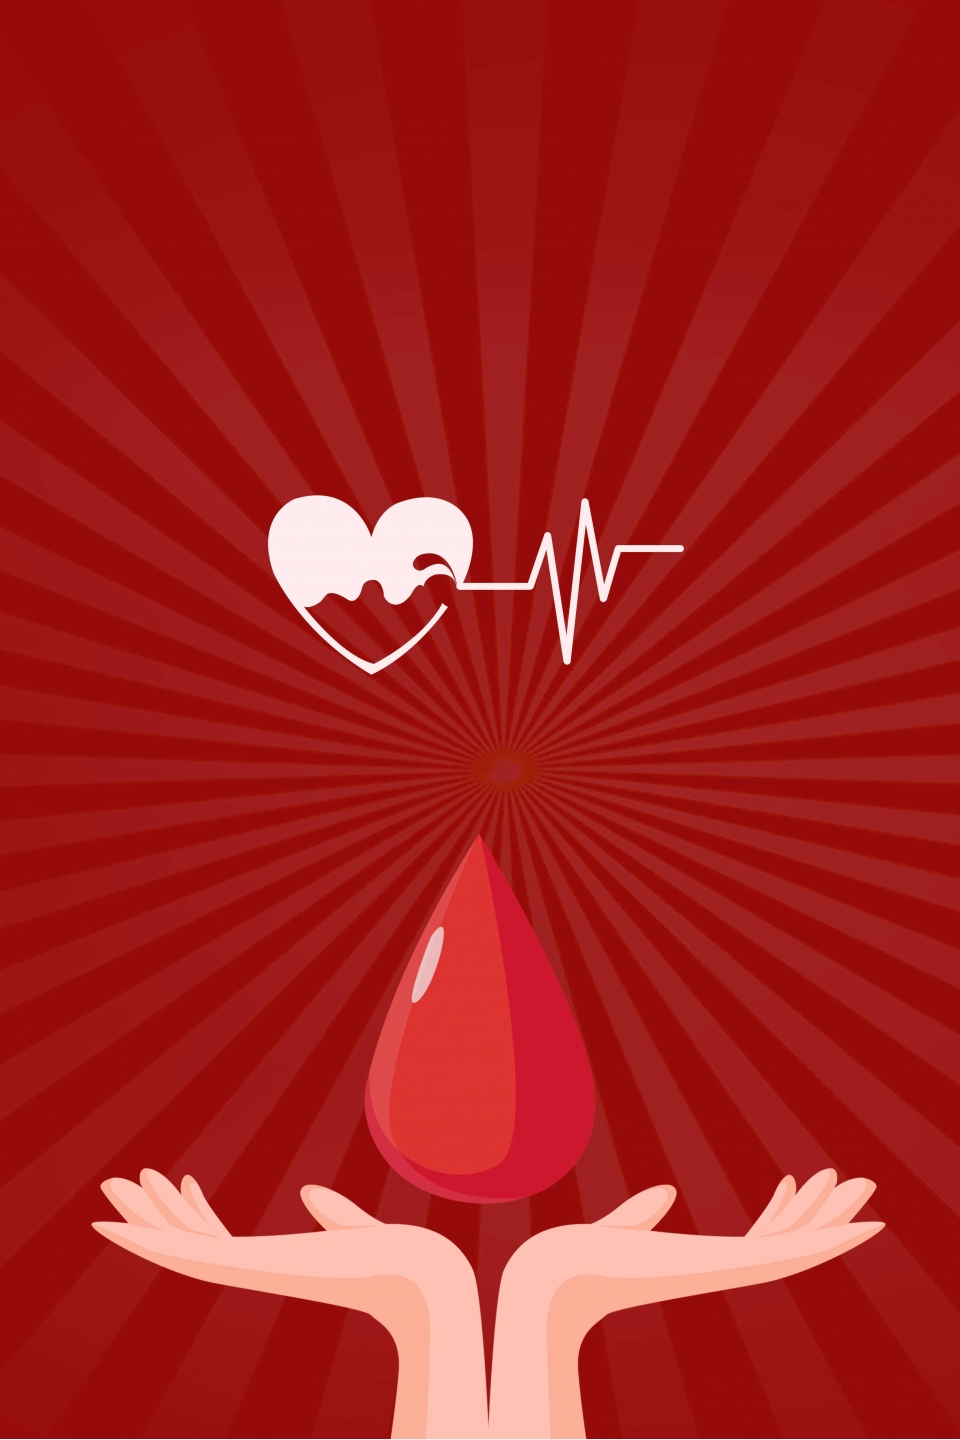 Red Hand Drawn Flatized Blood Donation Vector Poster Background Hand Drawn Flattened Creative Illustration Background Image For Free Download,Free T Shirt Design Maker